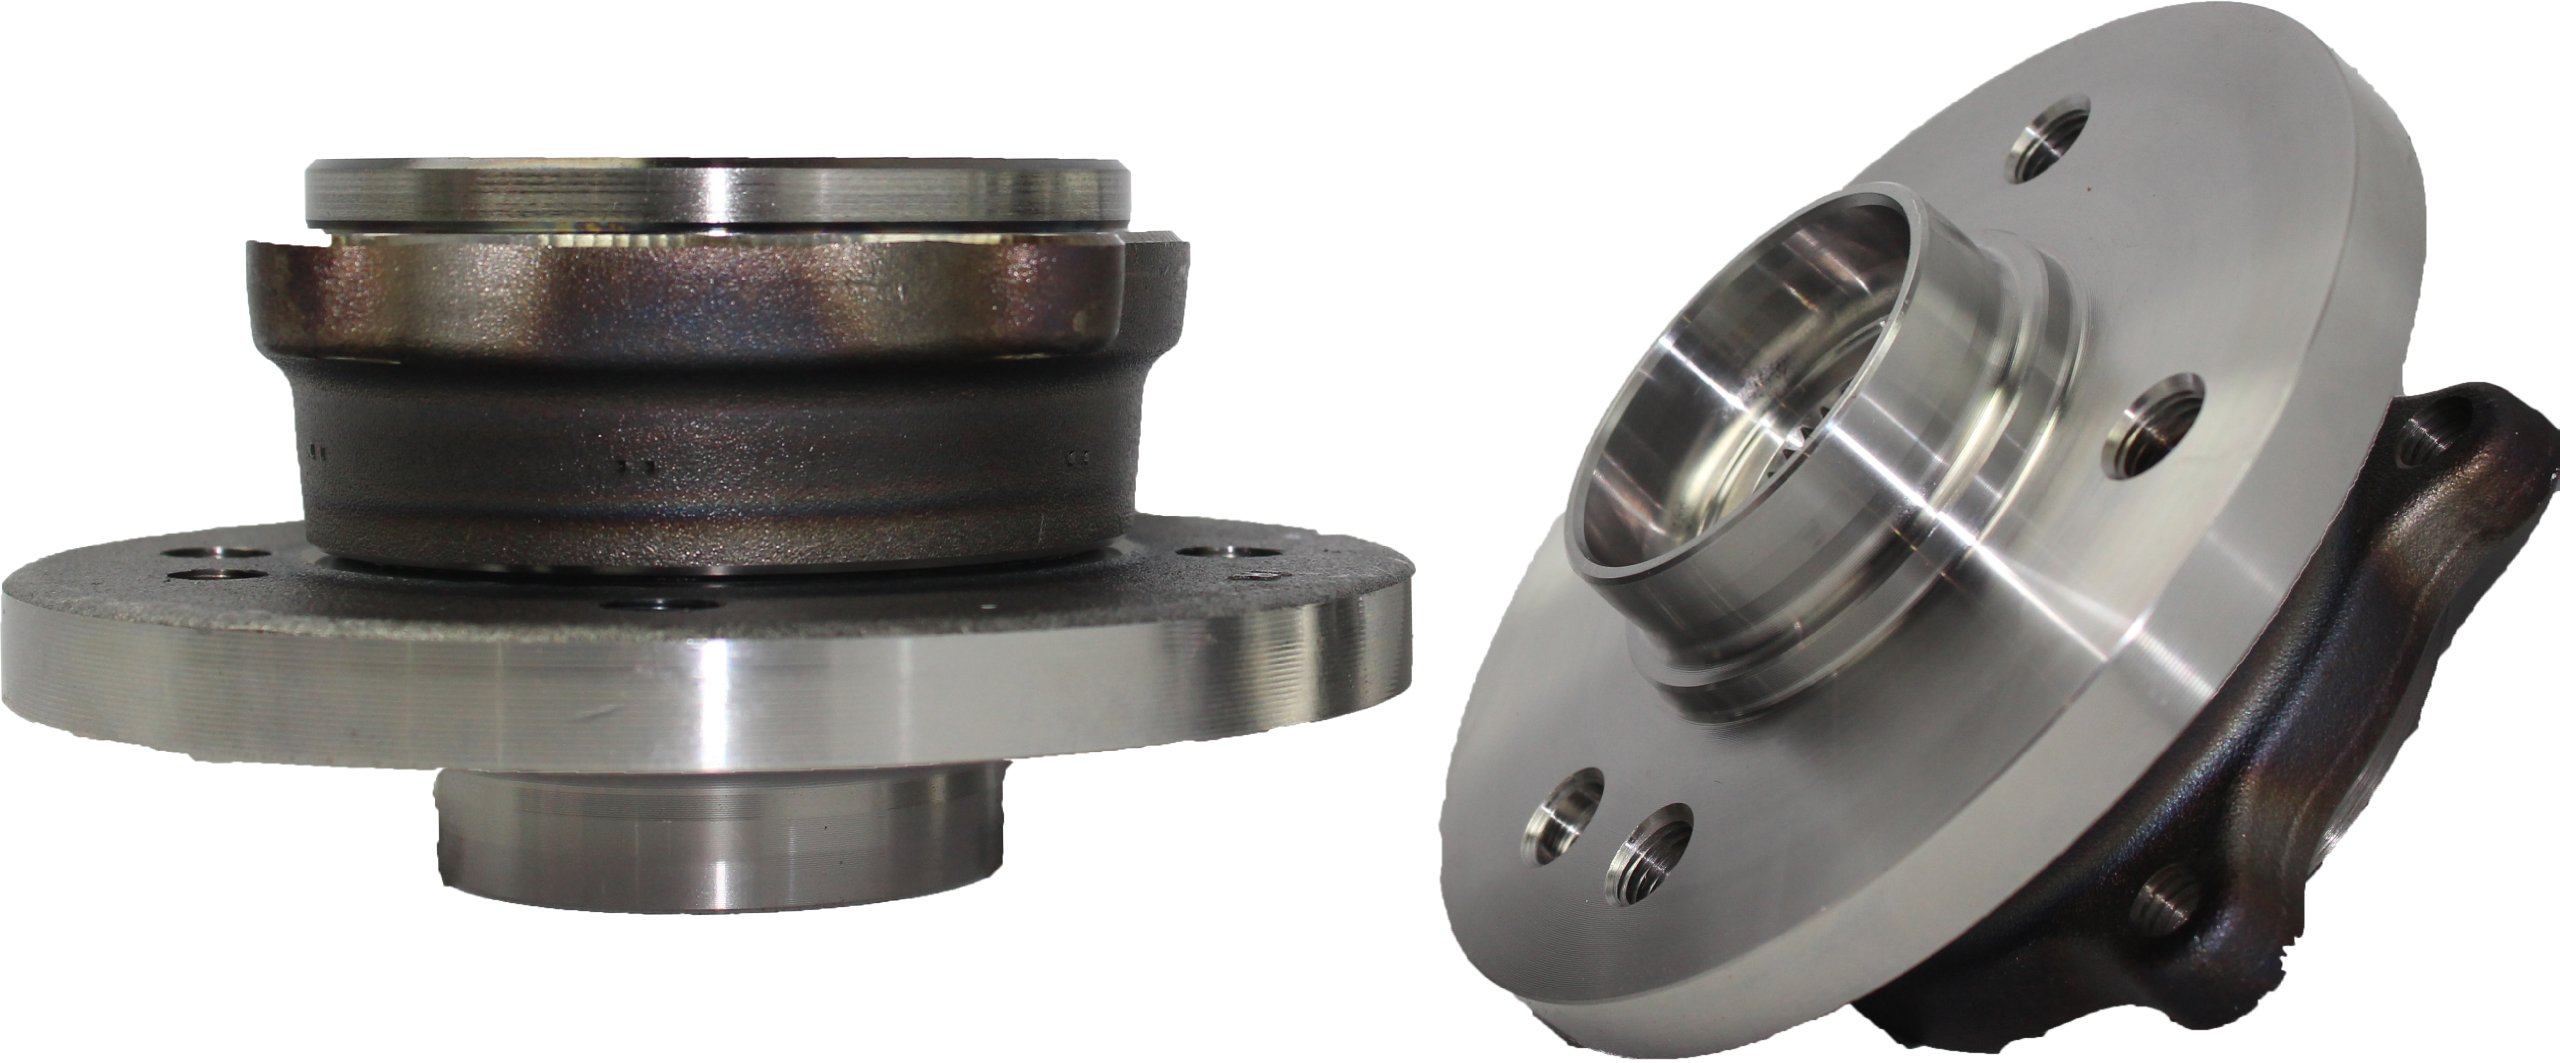 Brand New (Both) Front Wheel Hub and Bearing Assembly for 2002-2006 Mini Cooper 12MM THREAD LUG SIZE 4 Bolt w/ABS (Pair) 513226 x 2